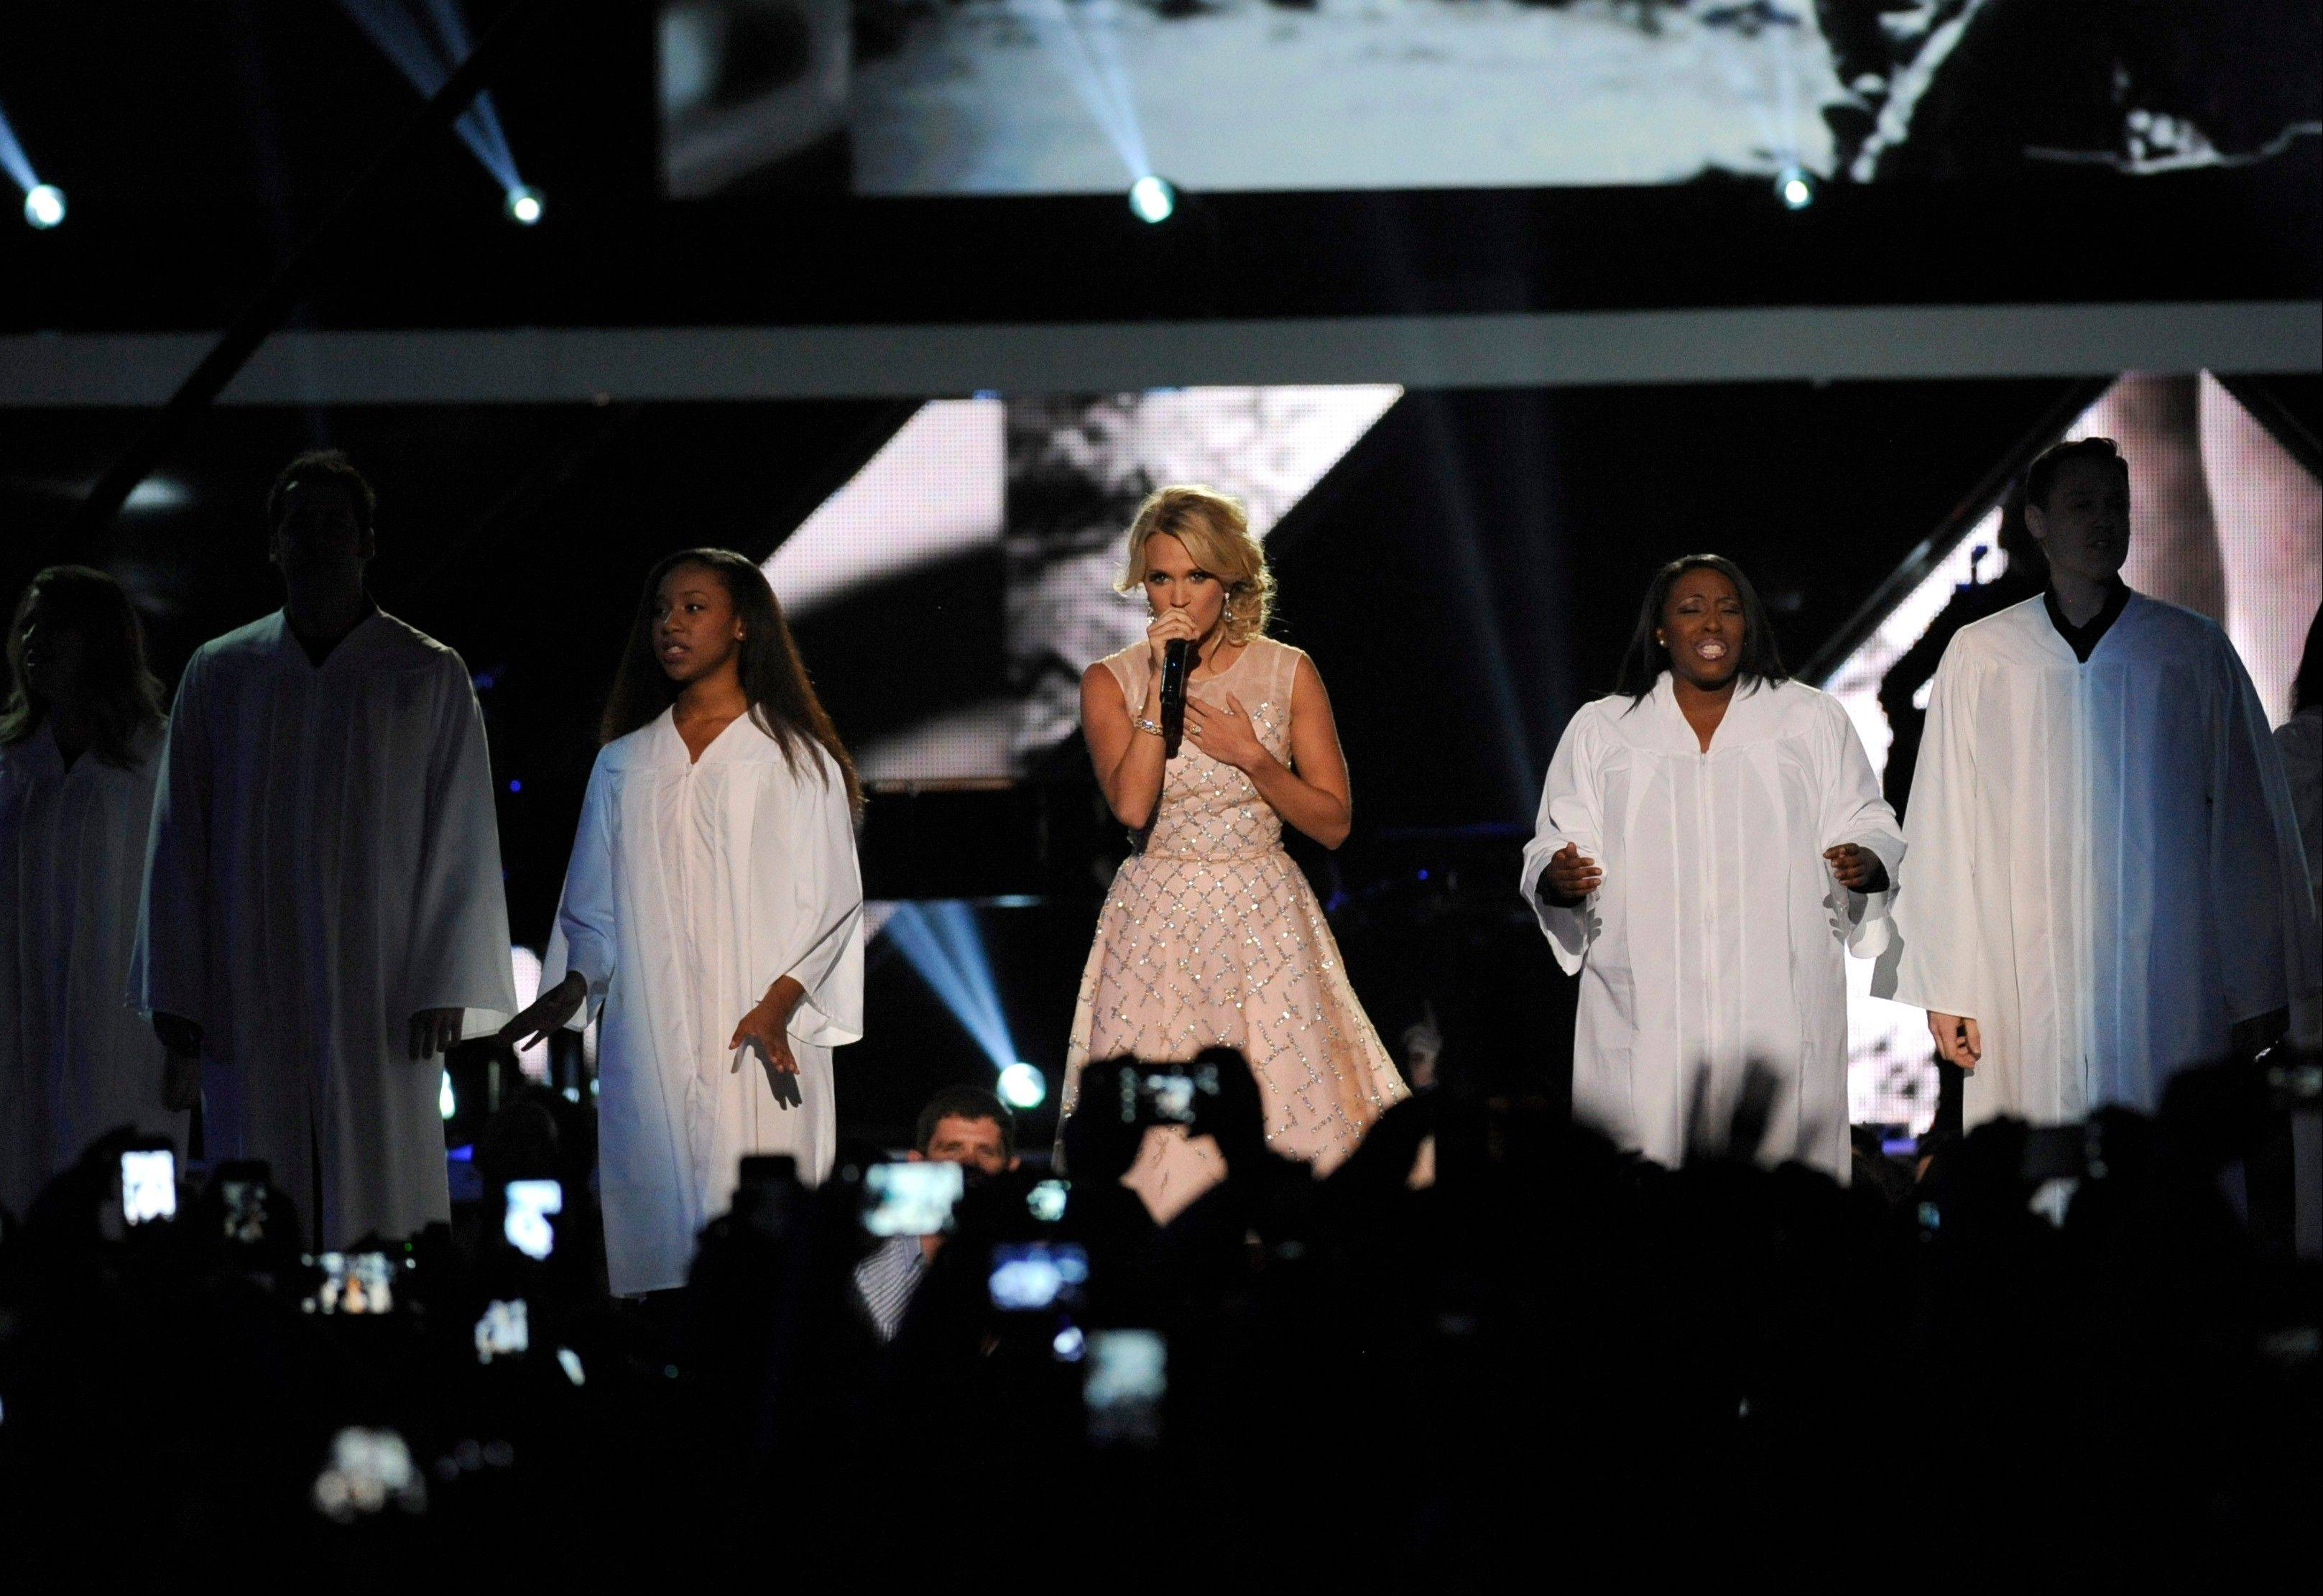 Carrie Underwood also took the stage to perform at the 2013 CMT Music Awards in Nashville, Tenn.